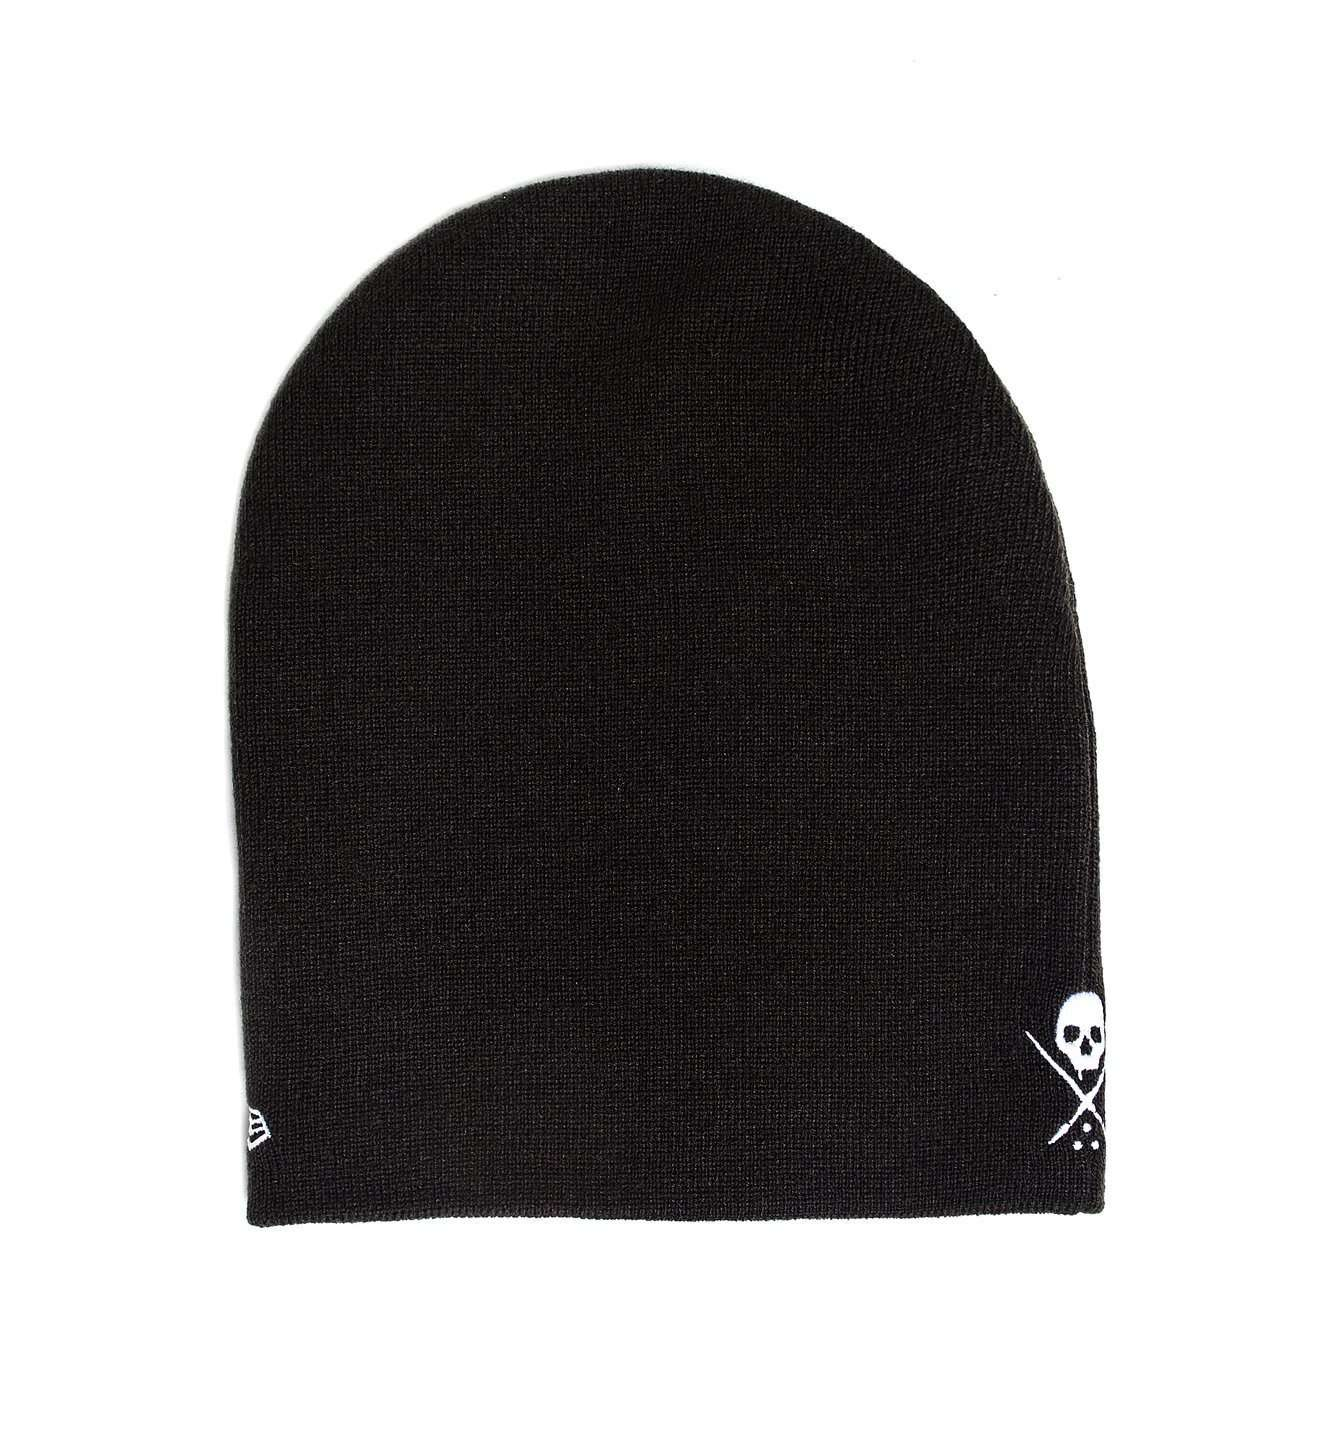 Standard Issue Beanie Black